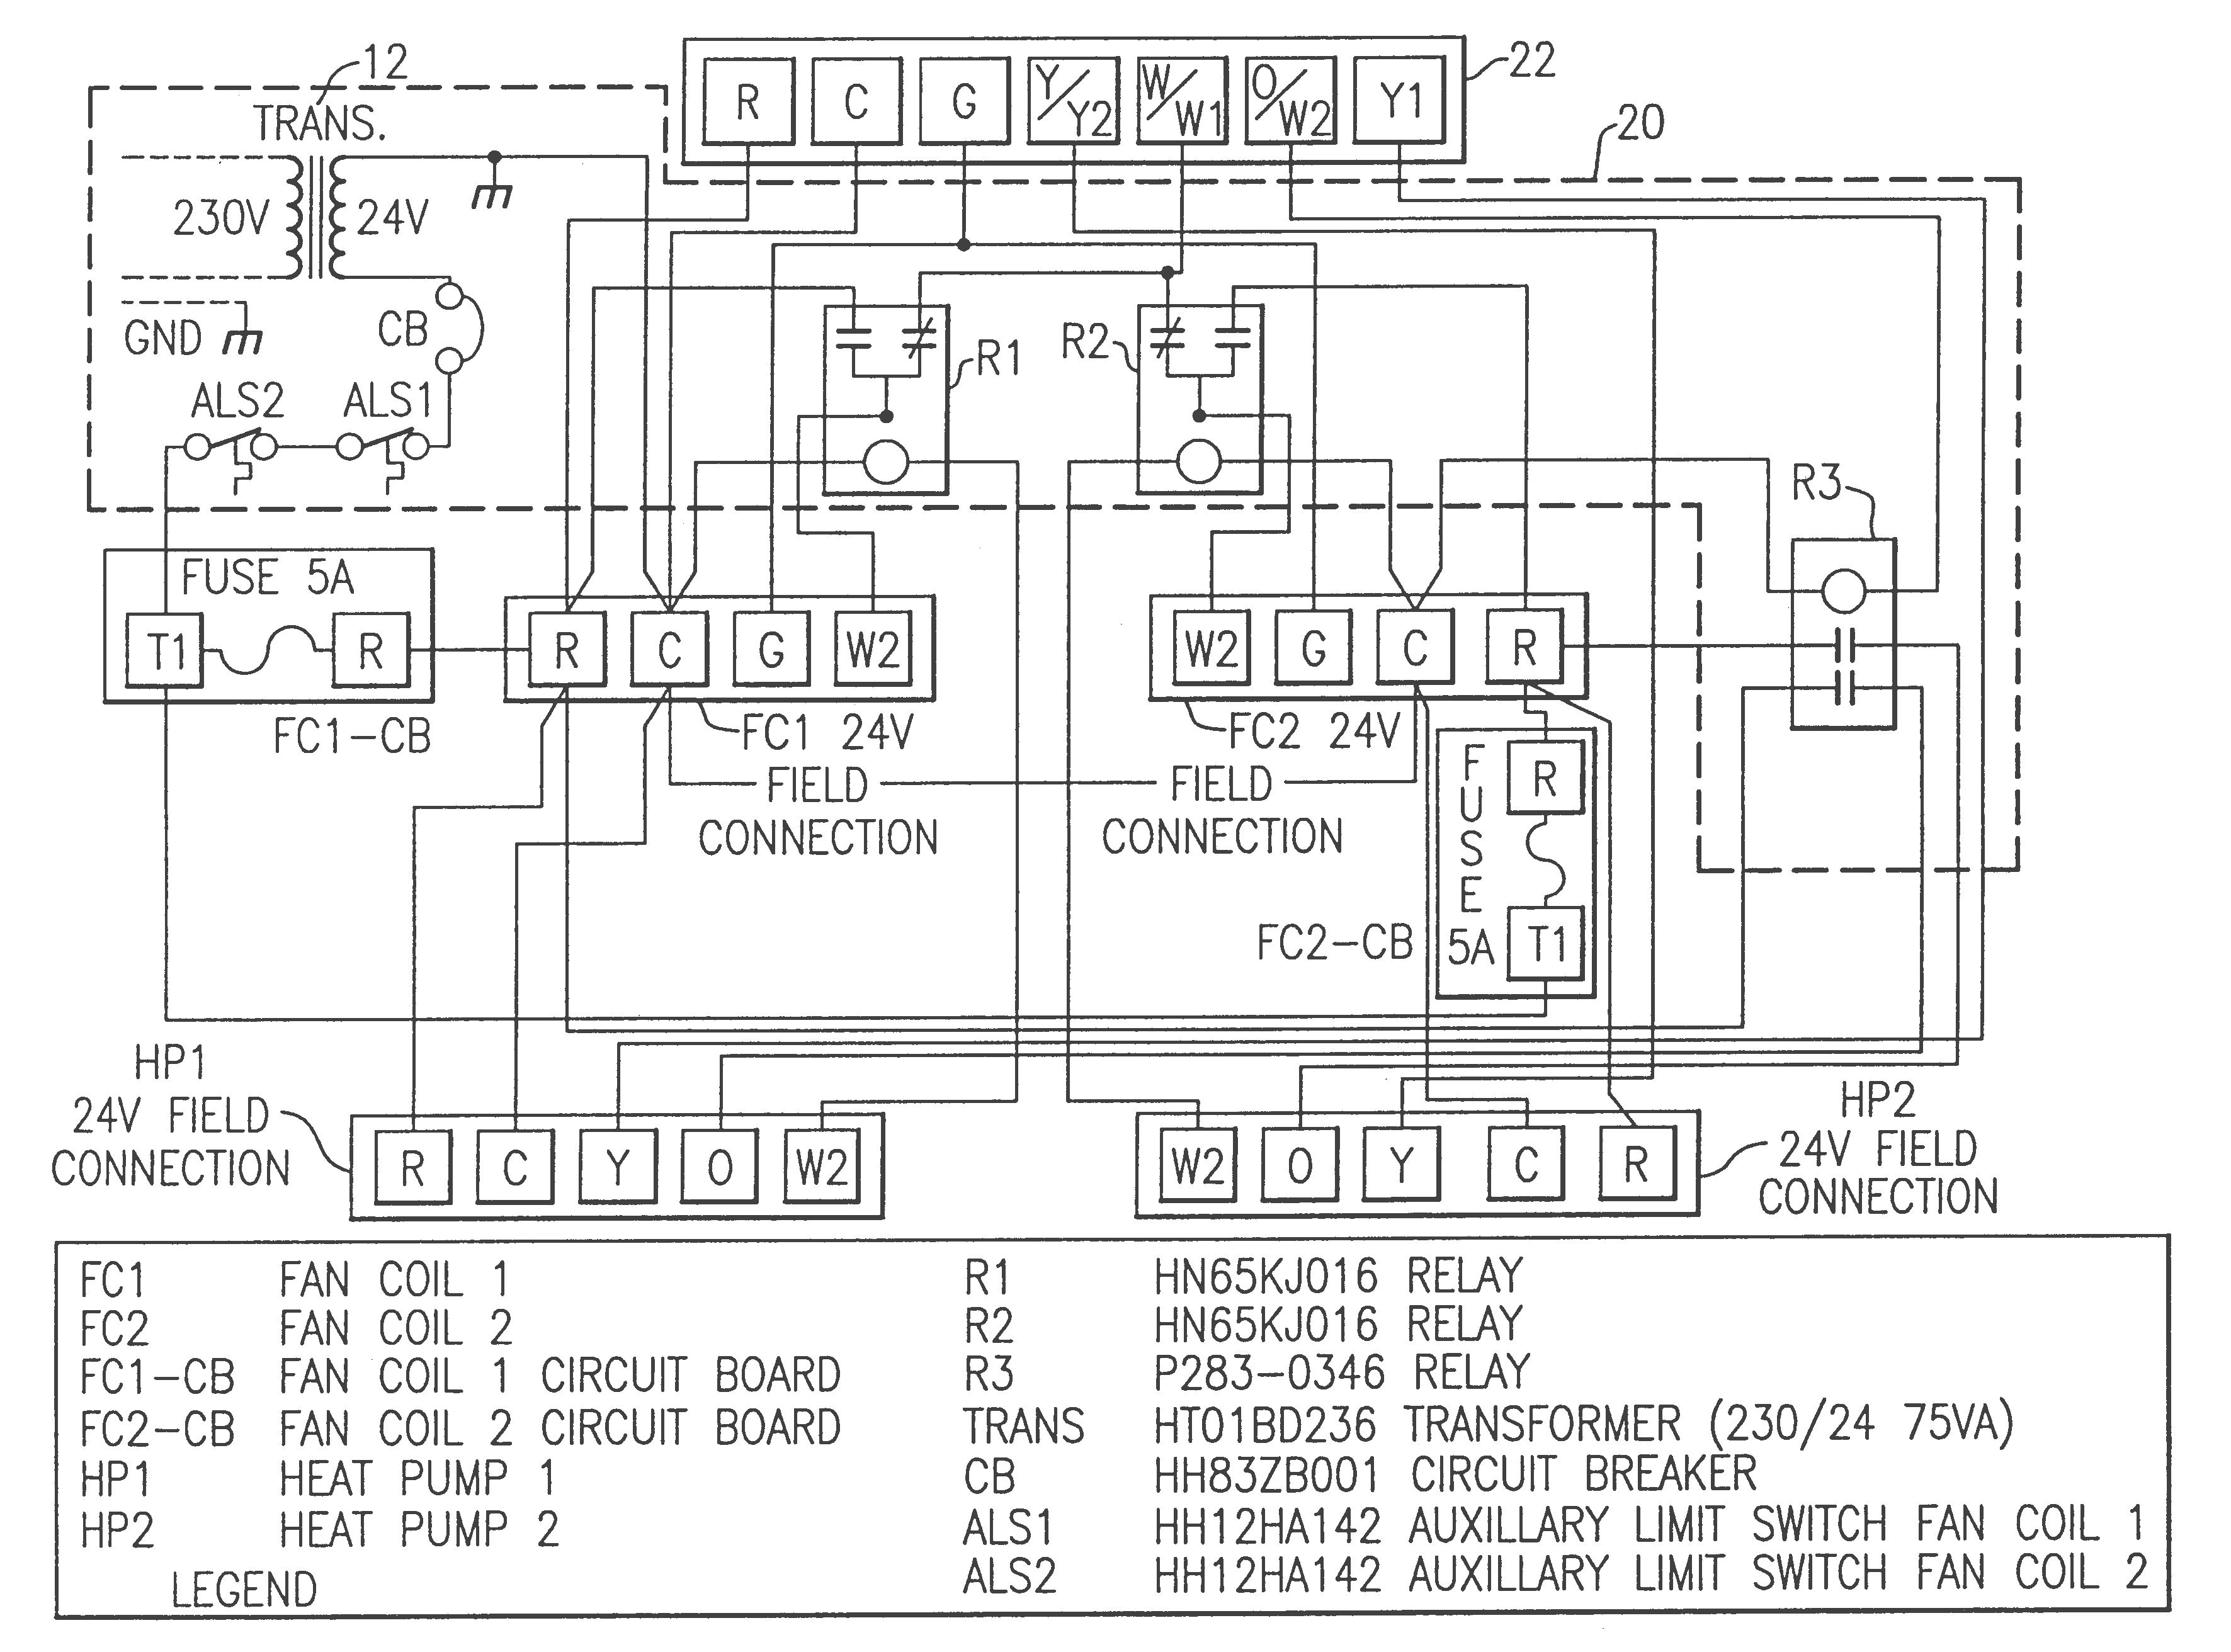 goodman heat pump package unit wiring diagram sample wiring refrigerator  start relay wiring diagram goodman heat